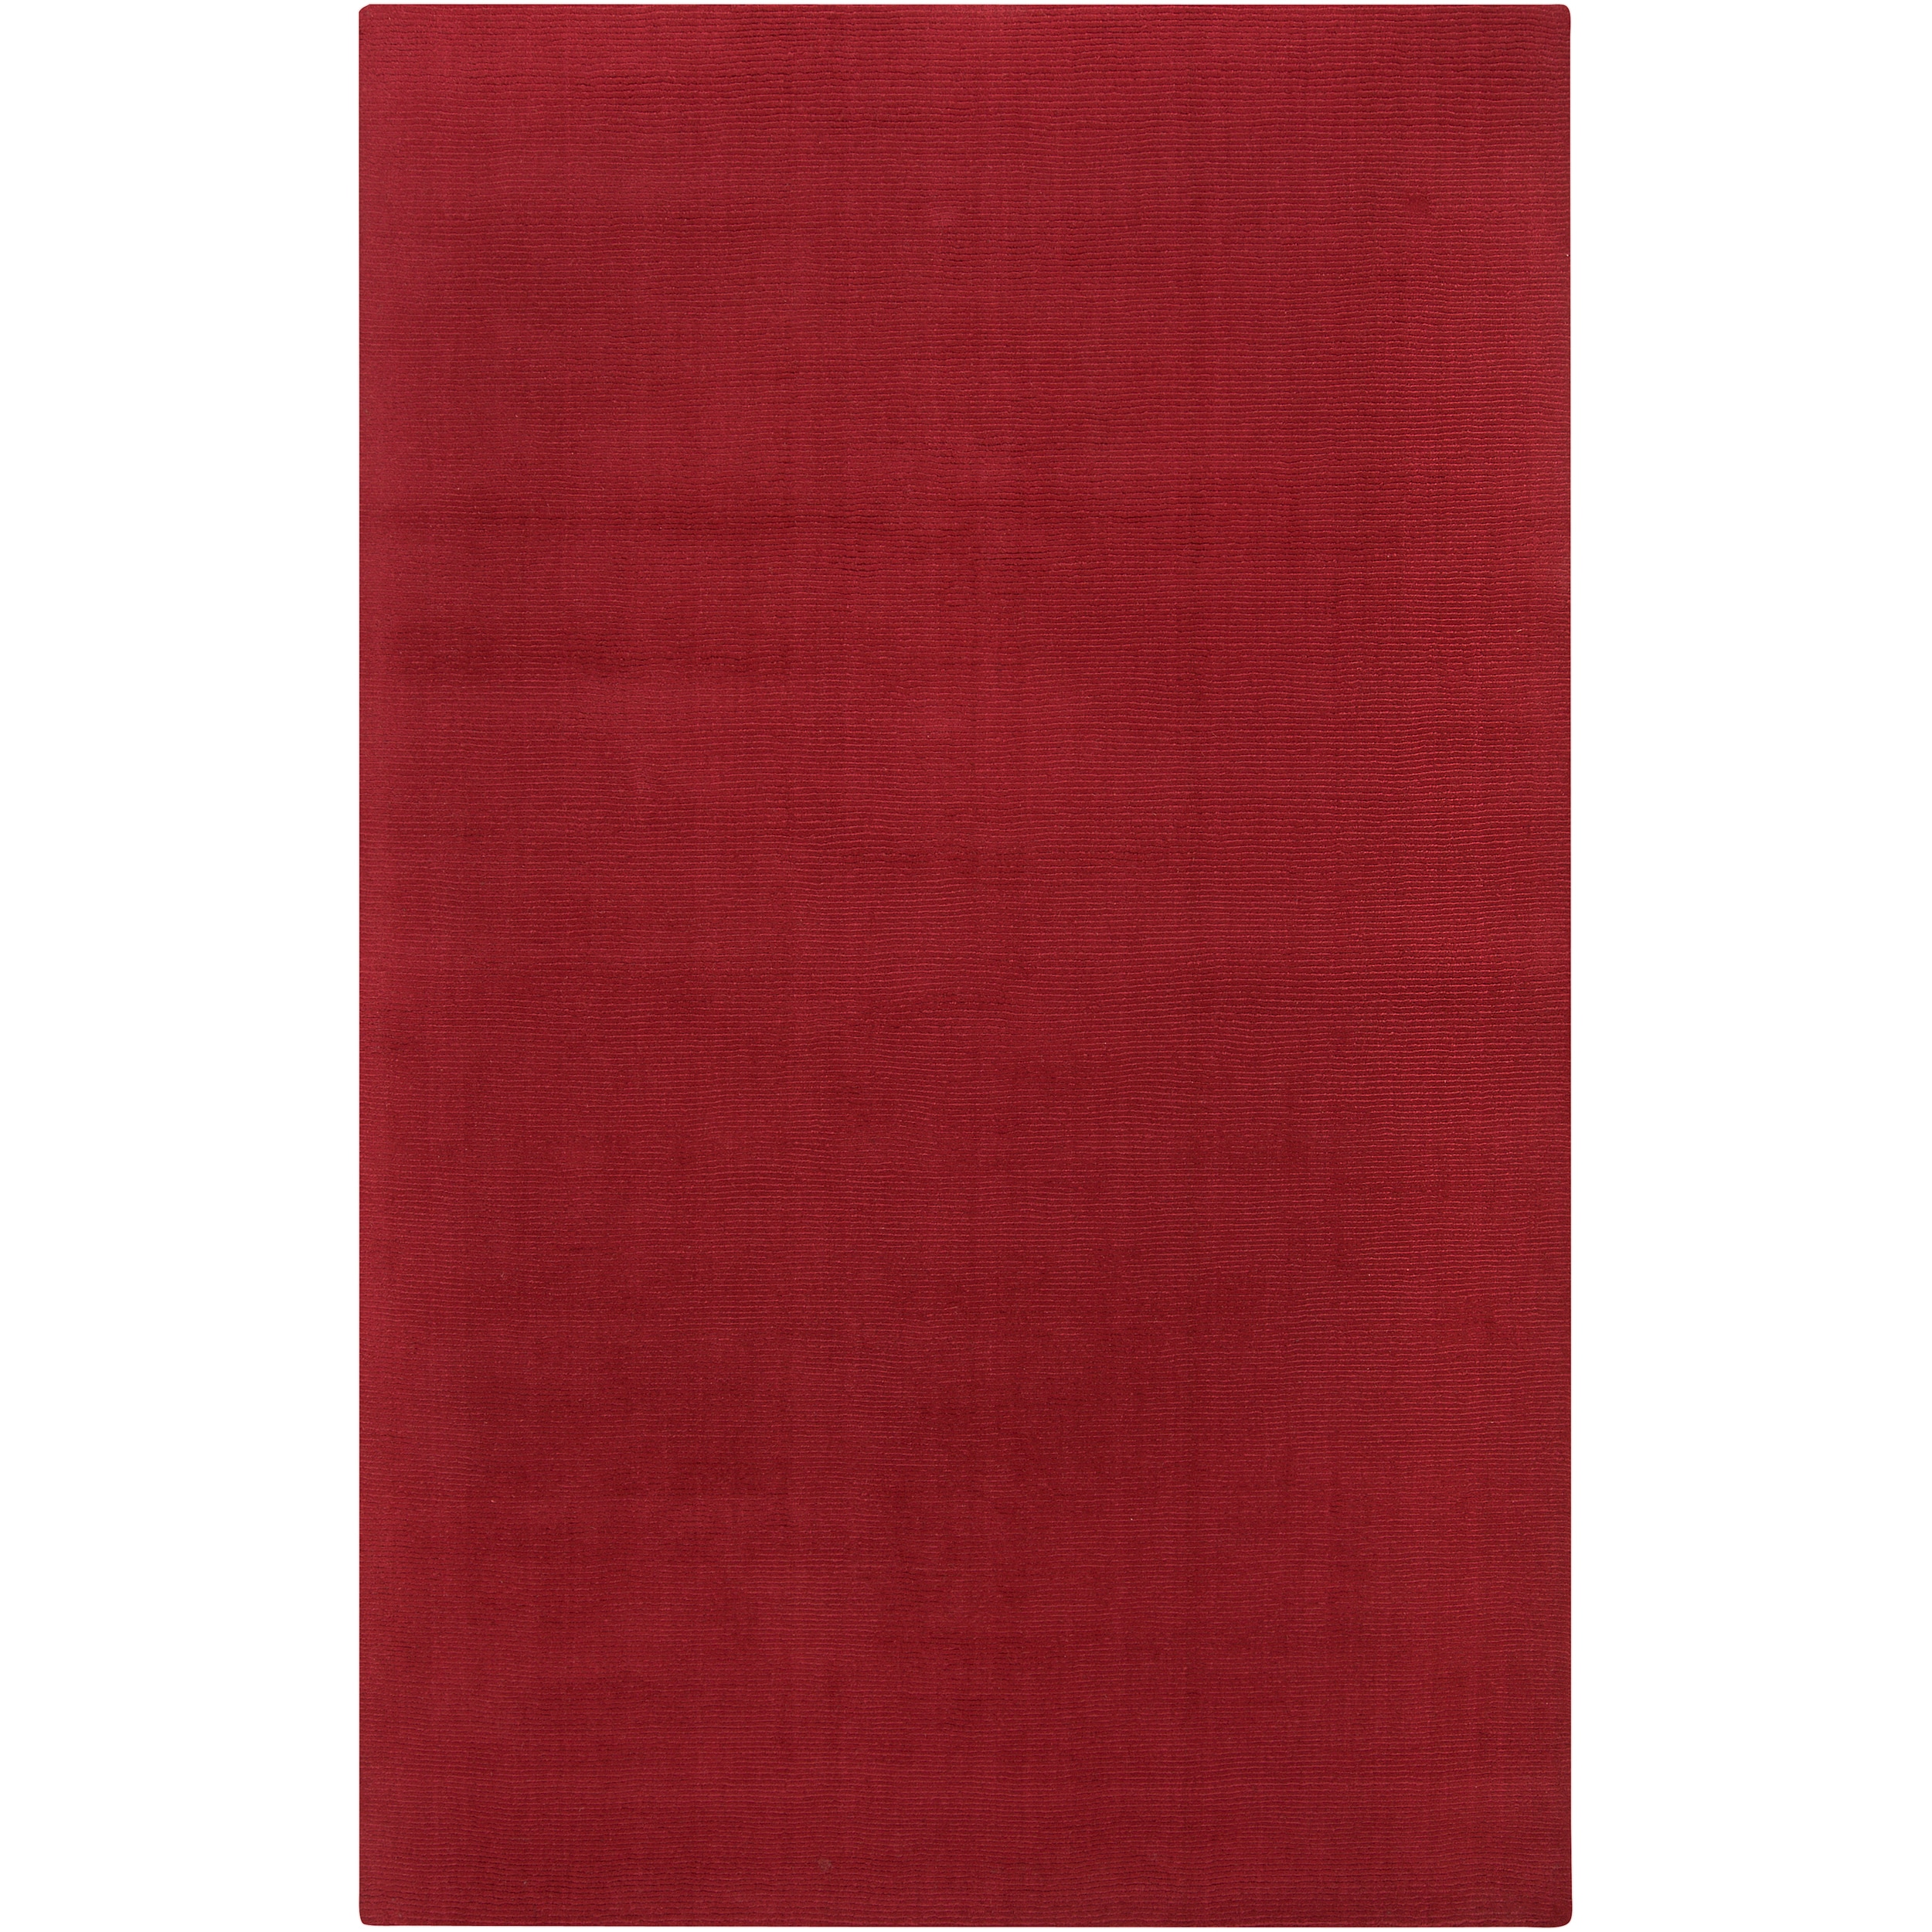 Hand-crafted Red Solid Casual Vaga Wool Rug (7'6 x 9'6)